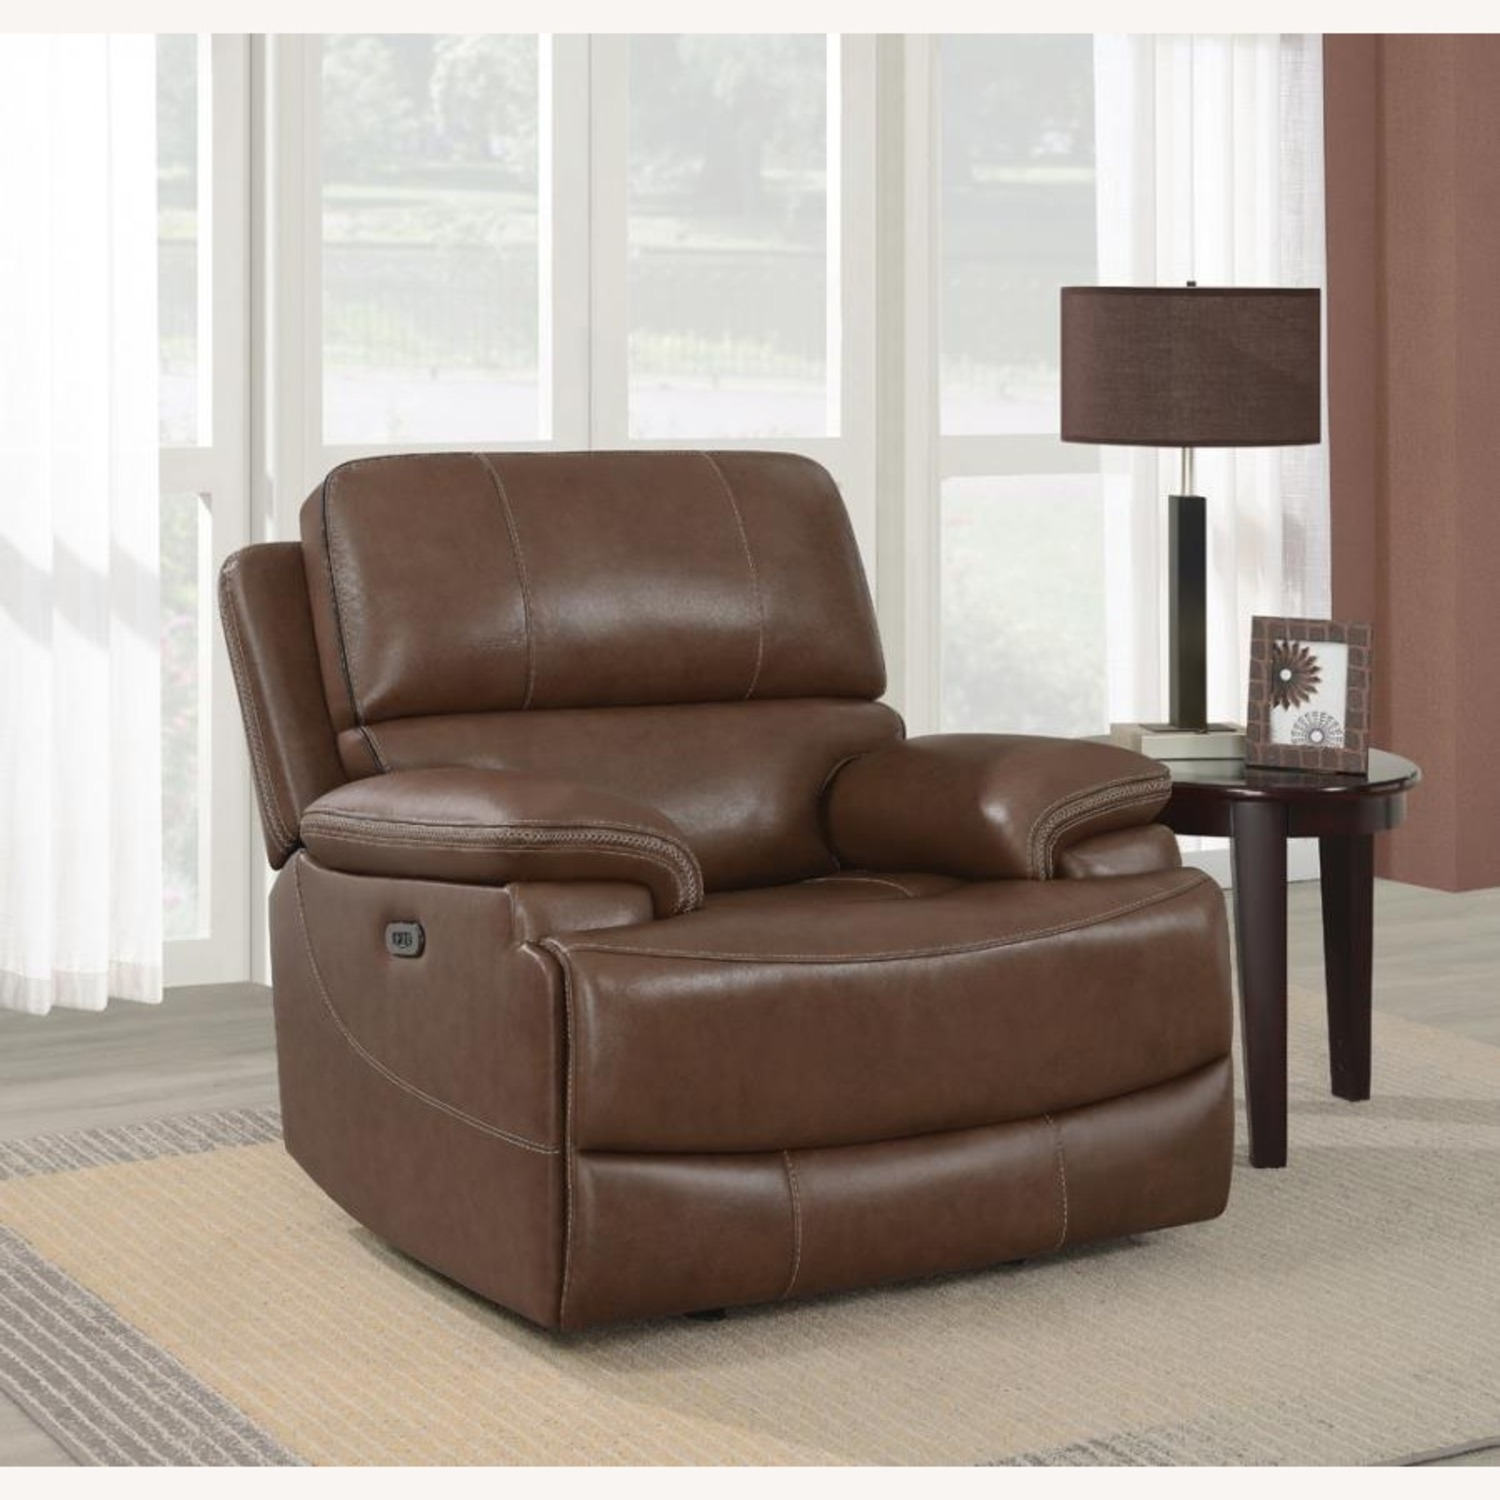 Power Recliner In Saddle Brown Leather - image-6